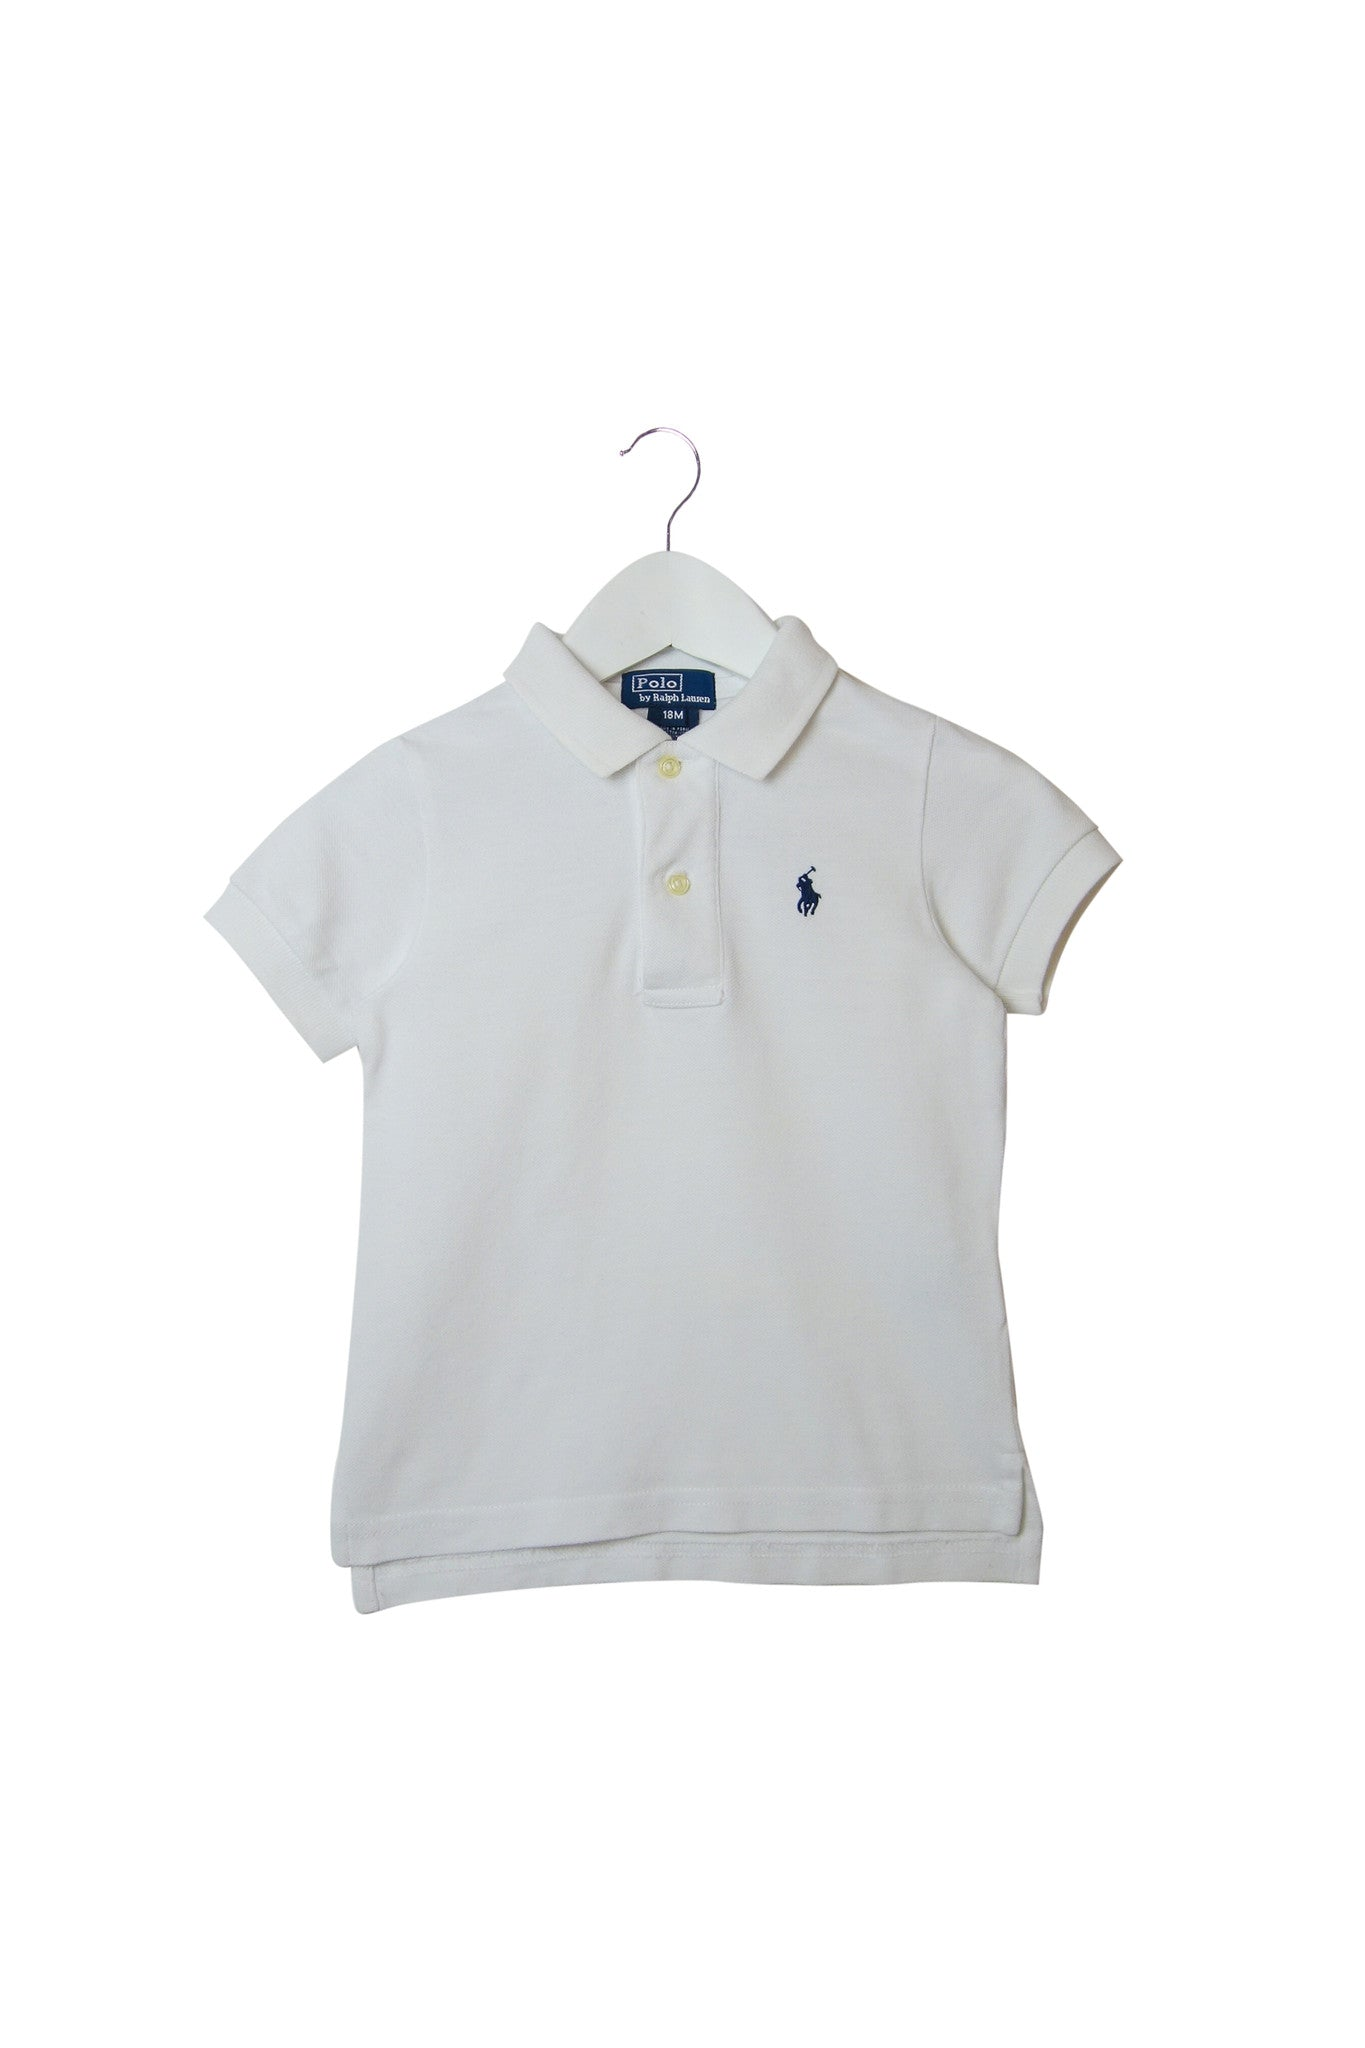 10003317 Polo Ralph Lauren Baby~Polo 18M at Retykle